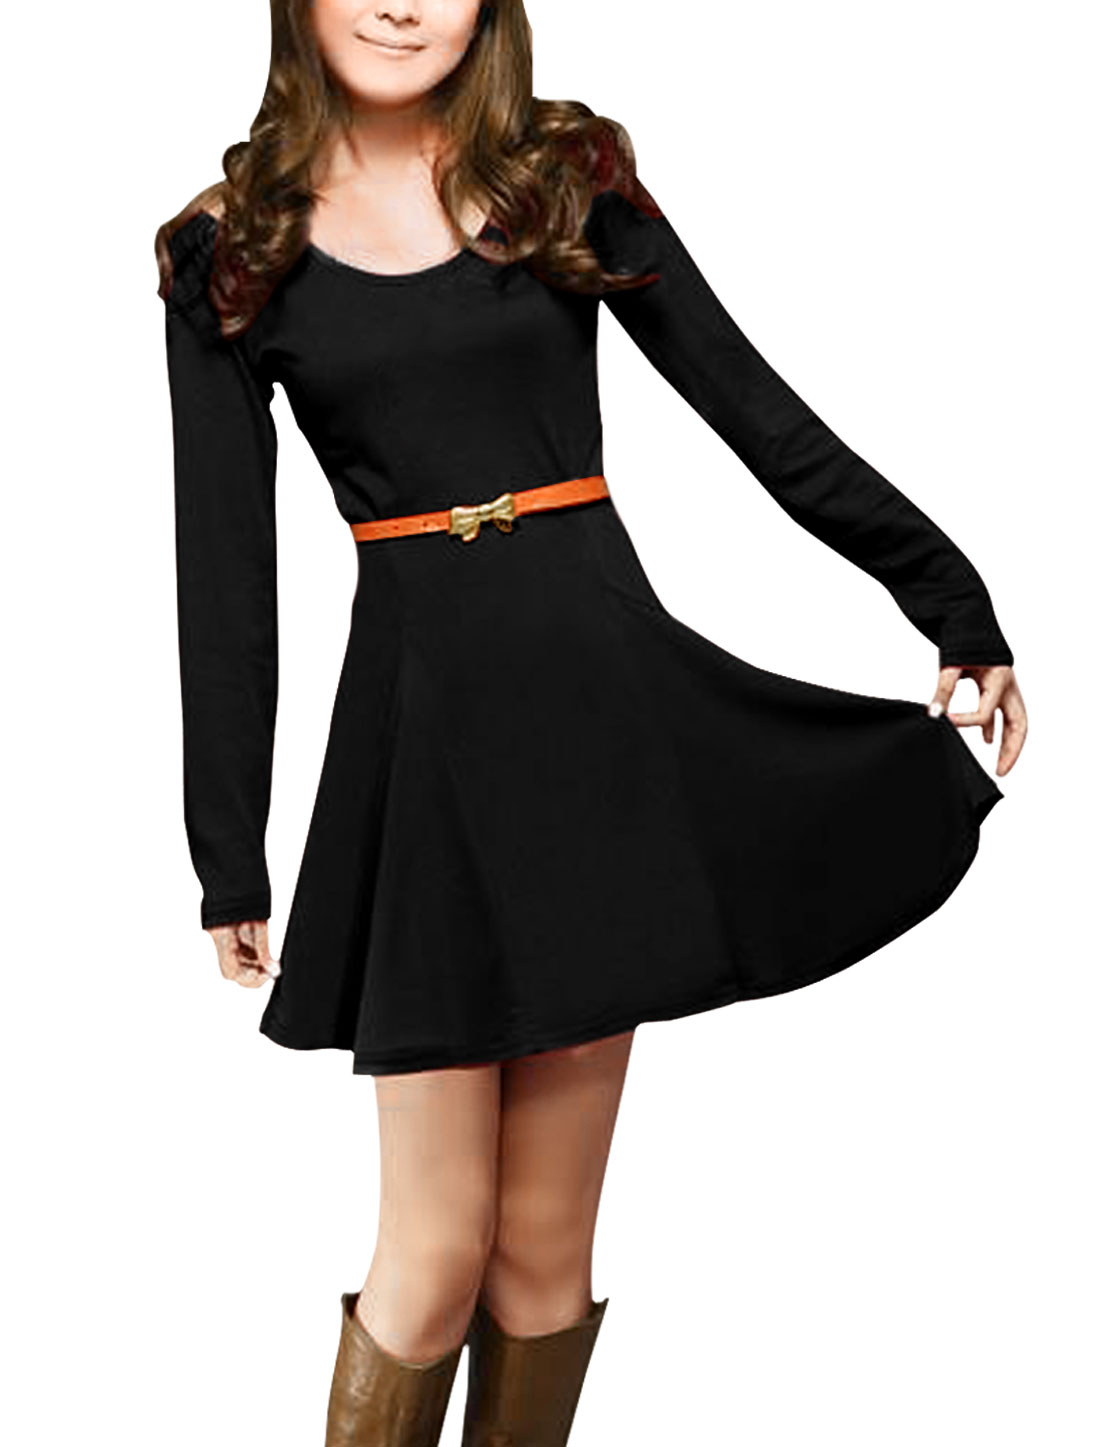 Ladies Long Sleeves Stretchy Dress w Belt Black M